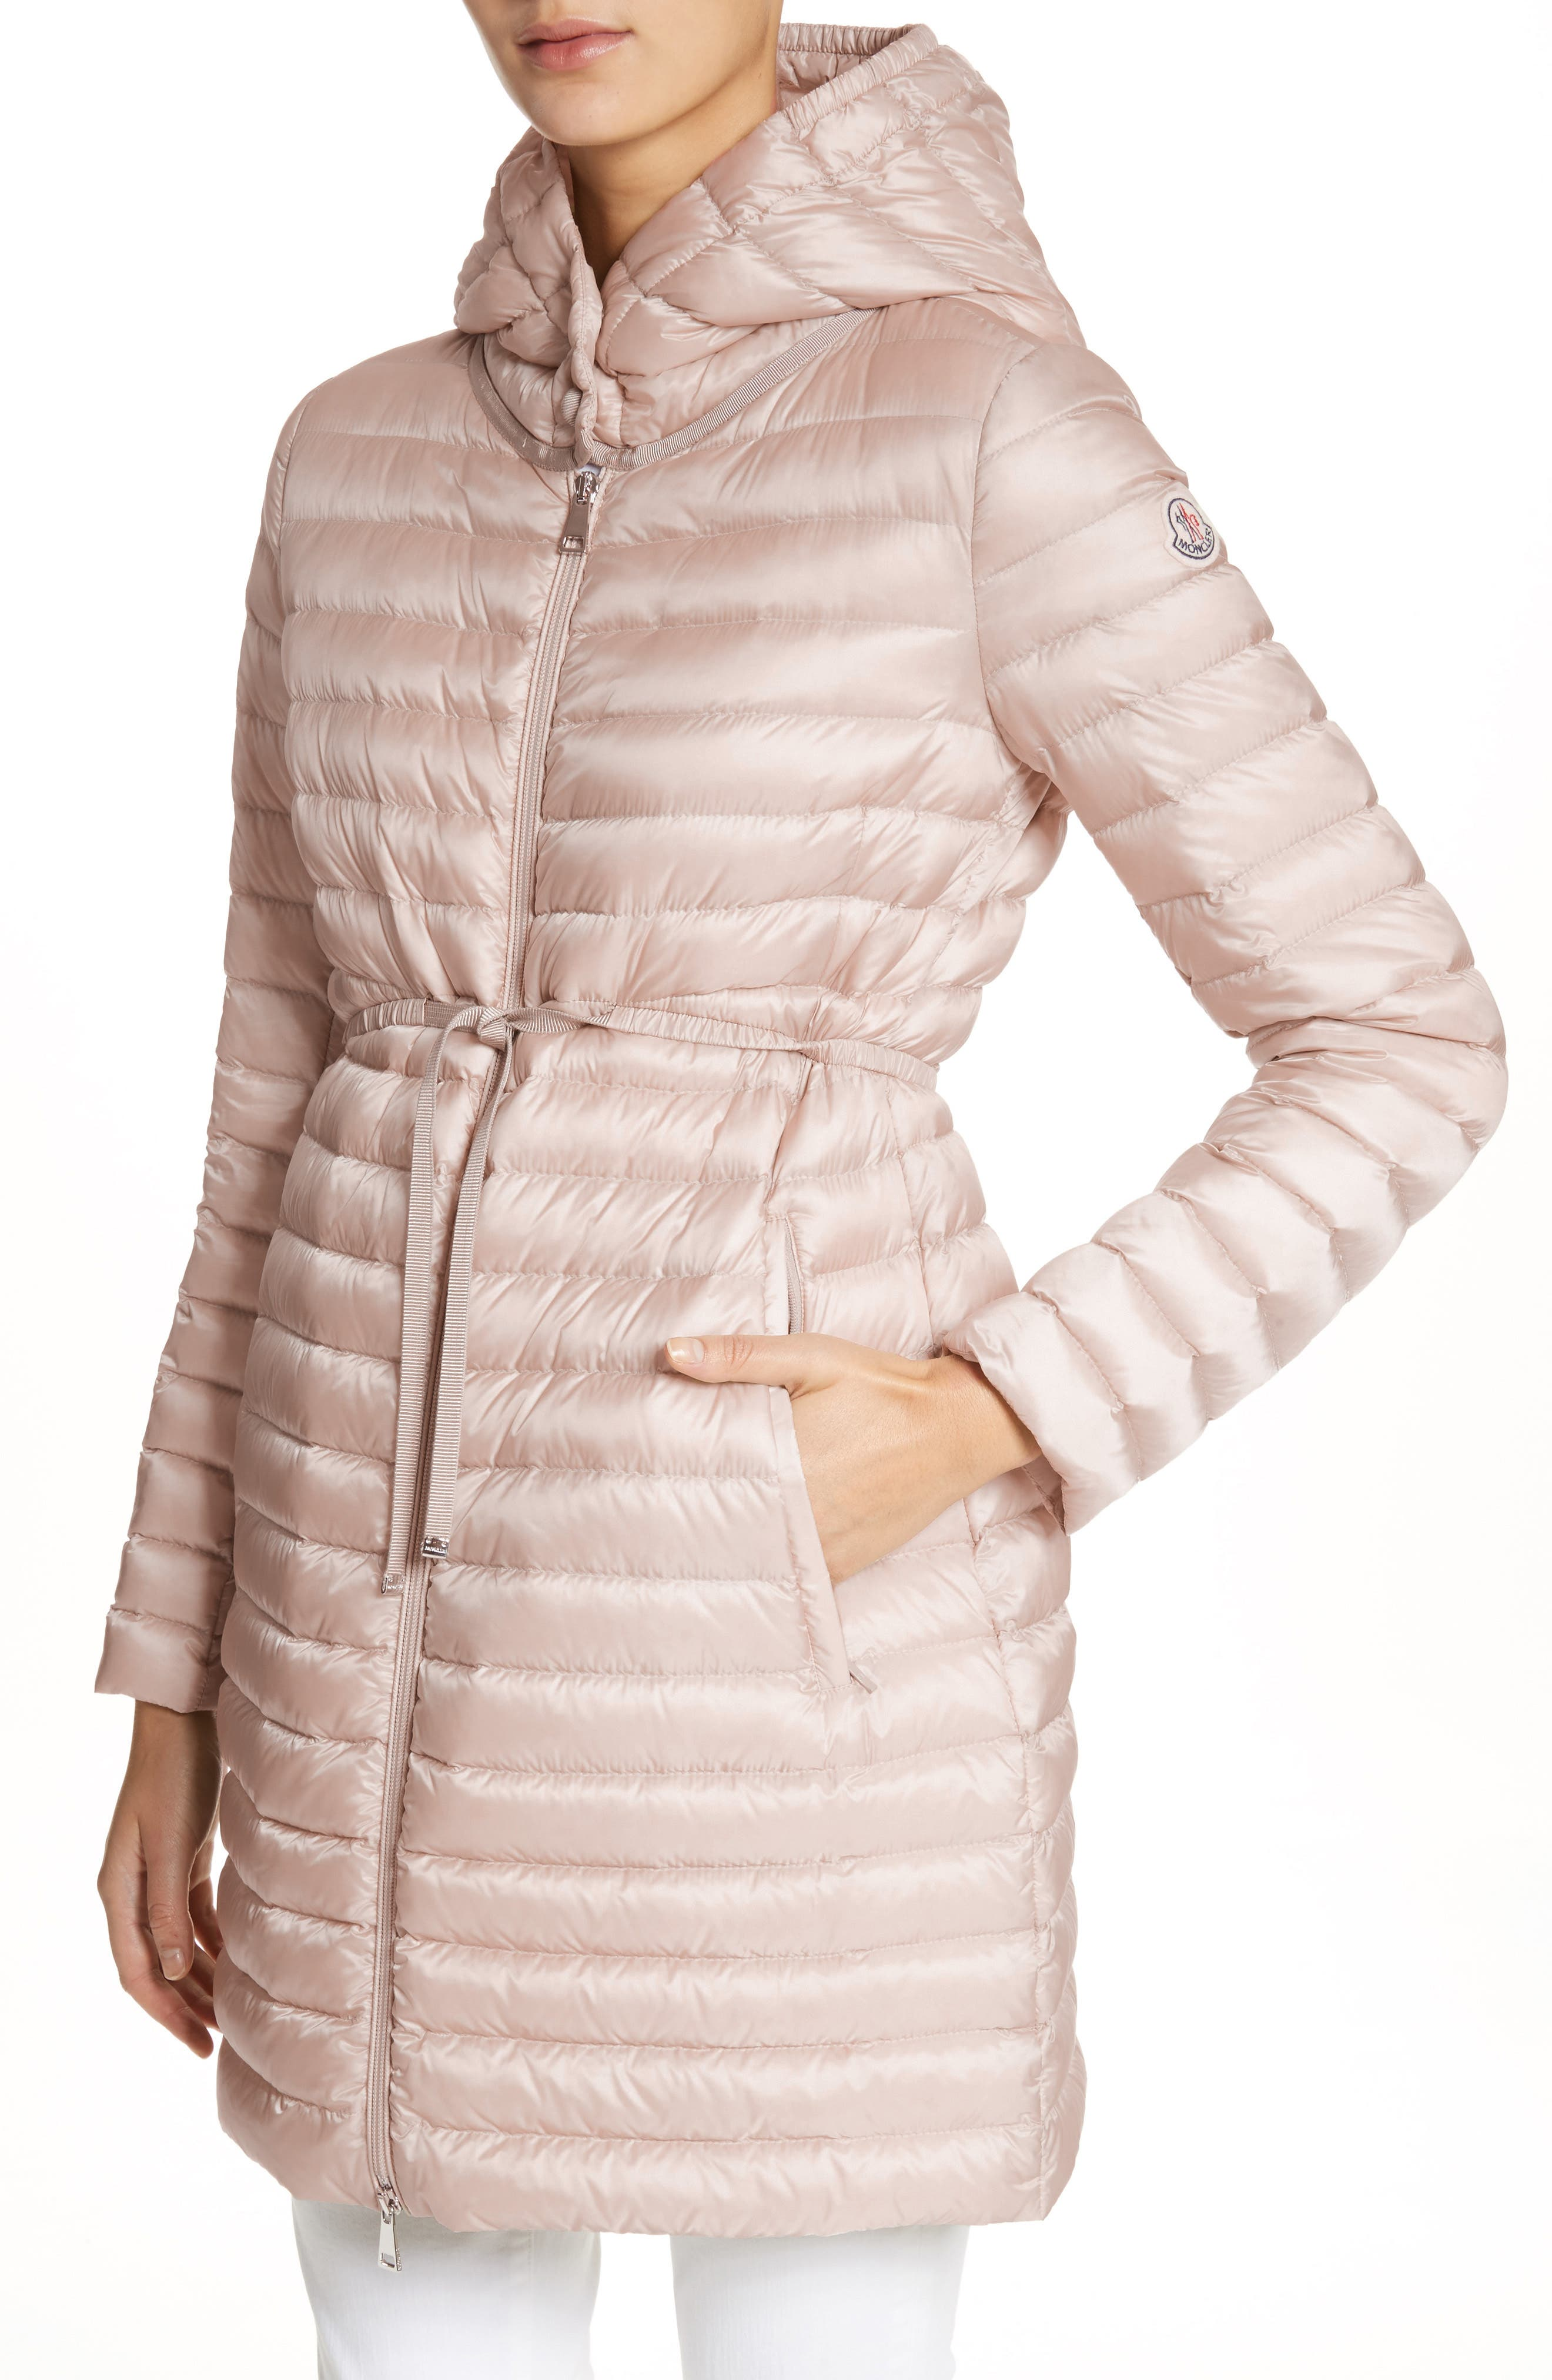 Barbel Water Resistant Long Hooded Down Jacket,                             Alternate thumbnail 4, color,                             Blush